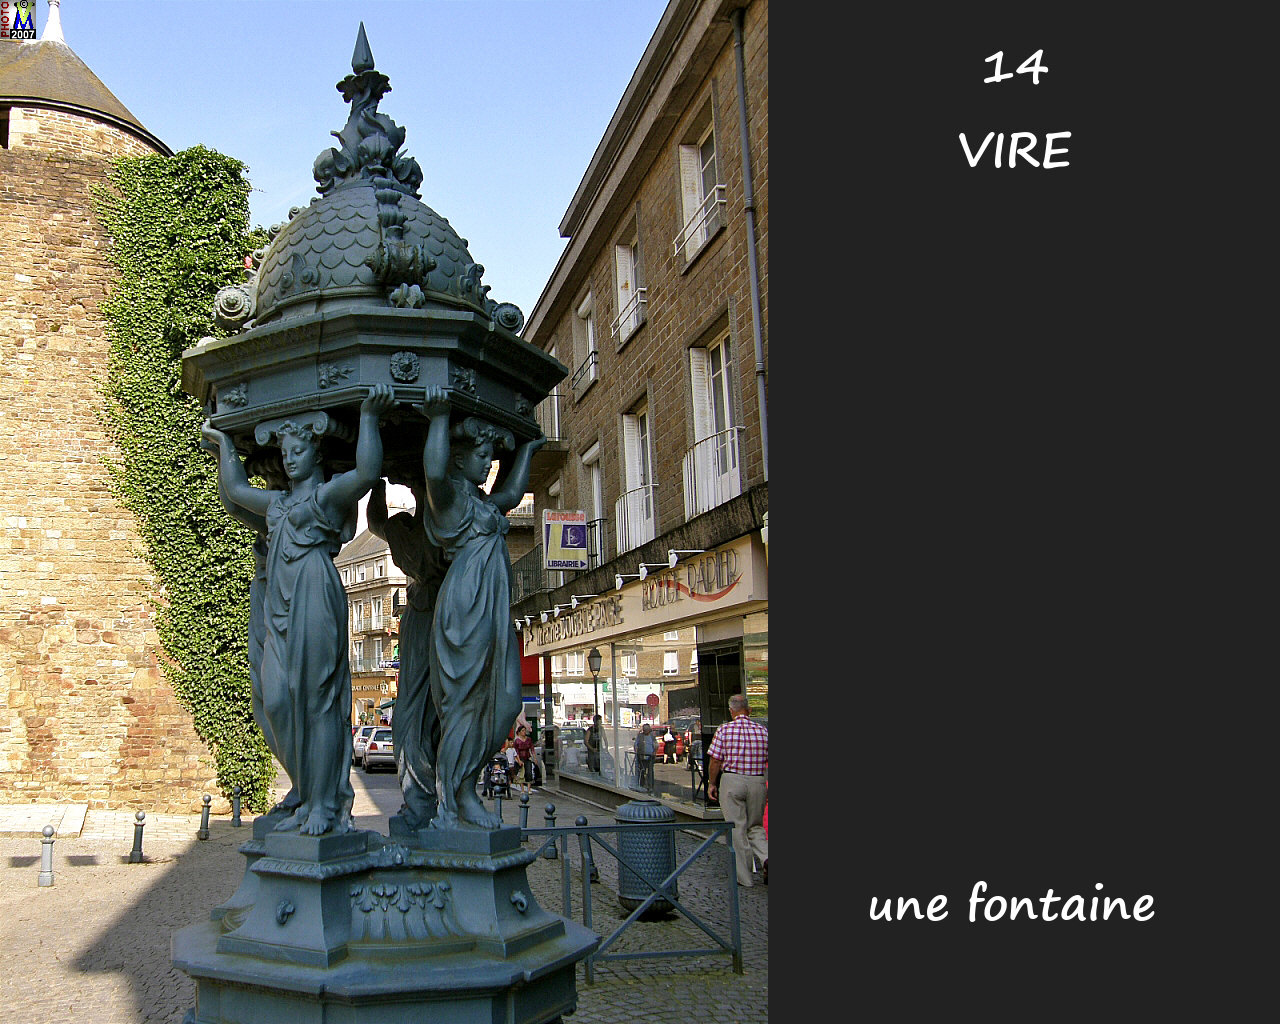 14VIRE_fontaine_102.jpg